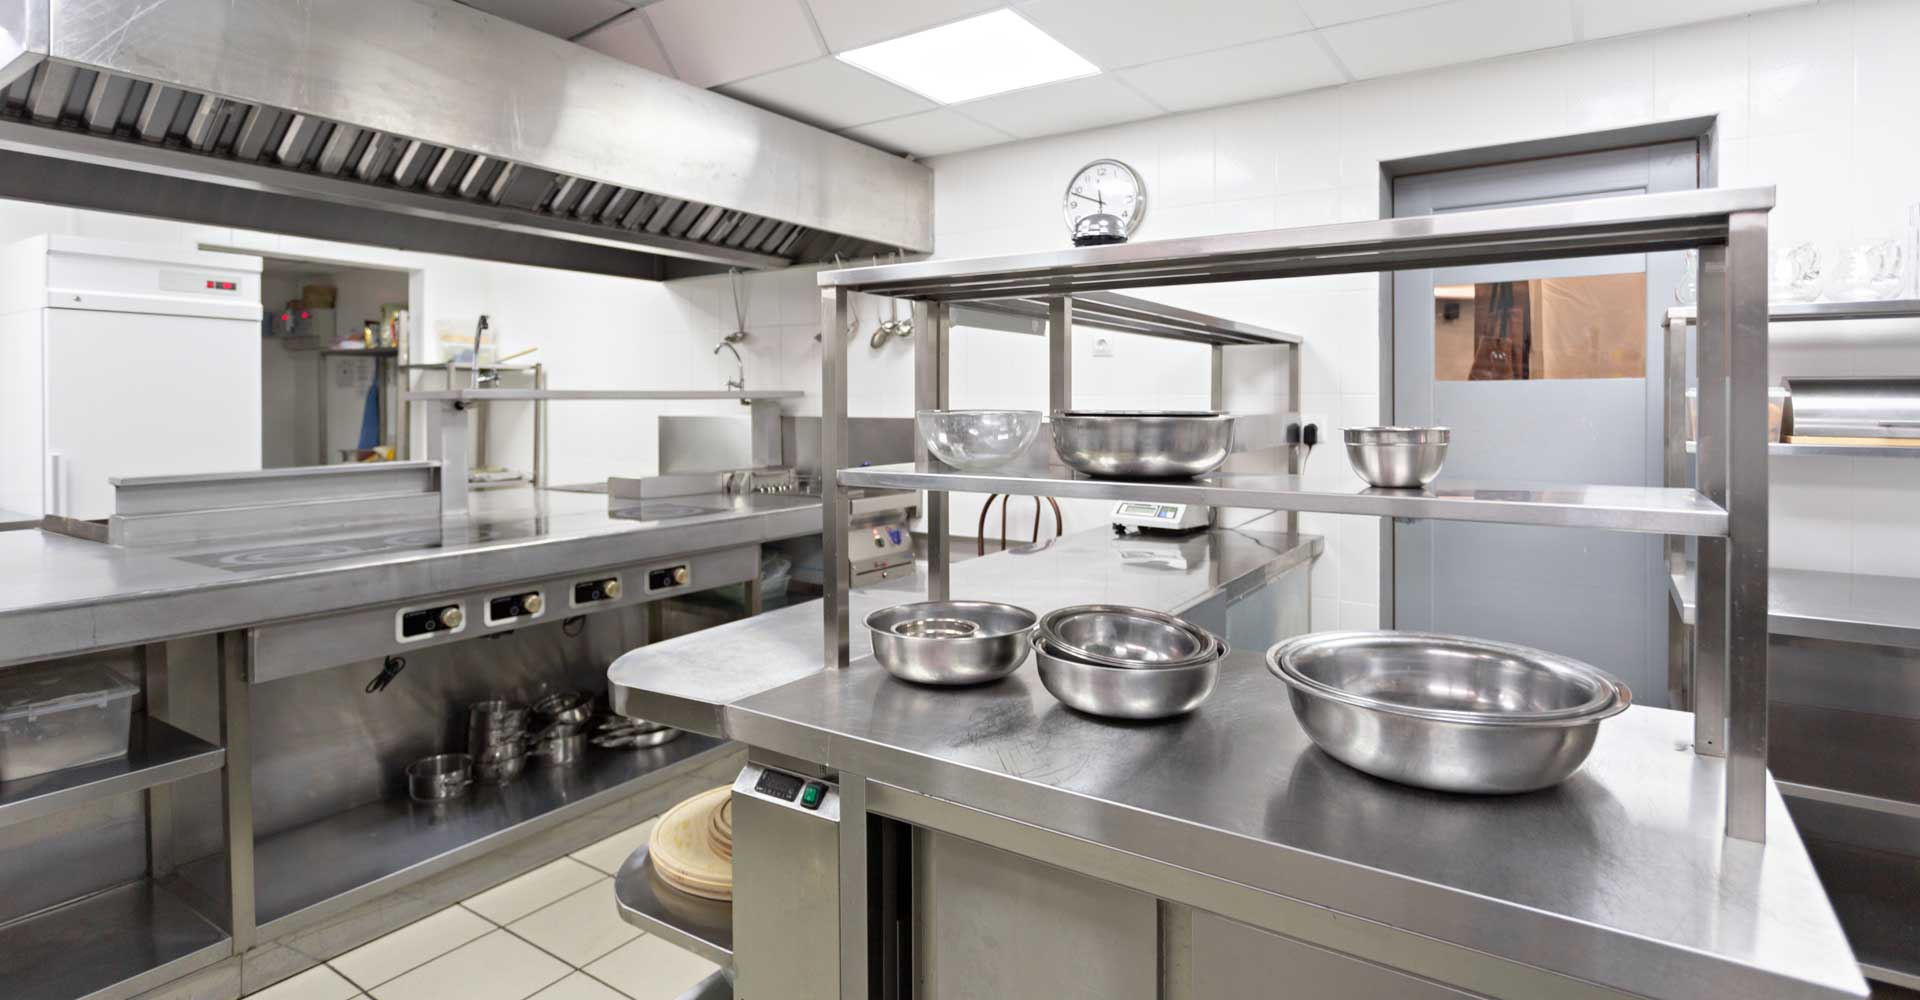 Industrial Kitchen Cleaning ad Hygiene Chemicals